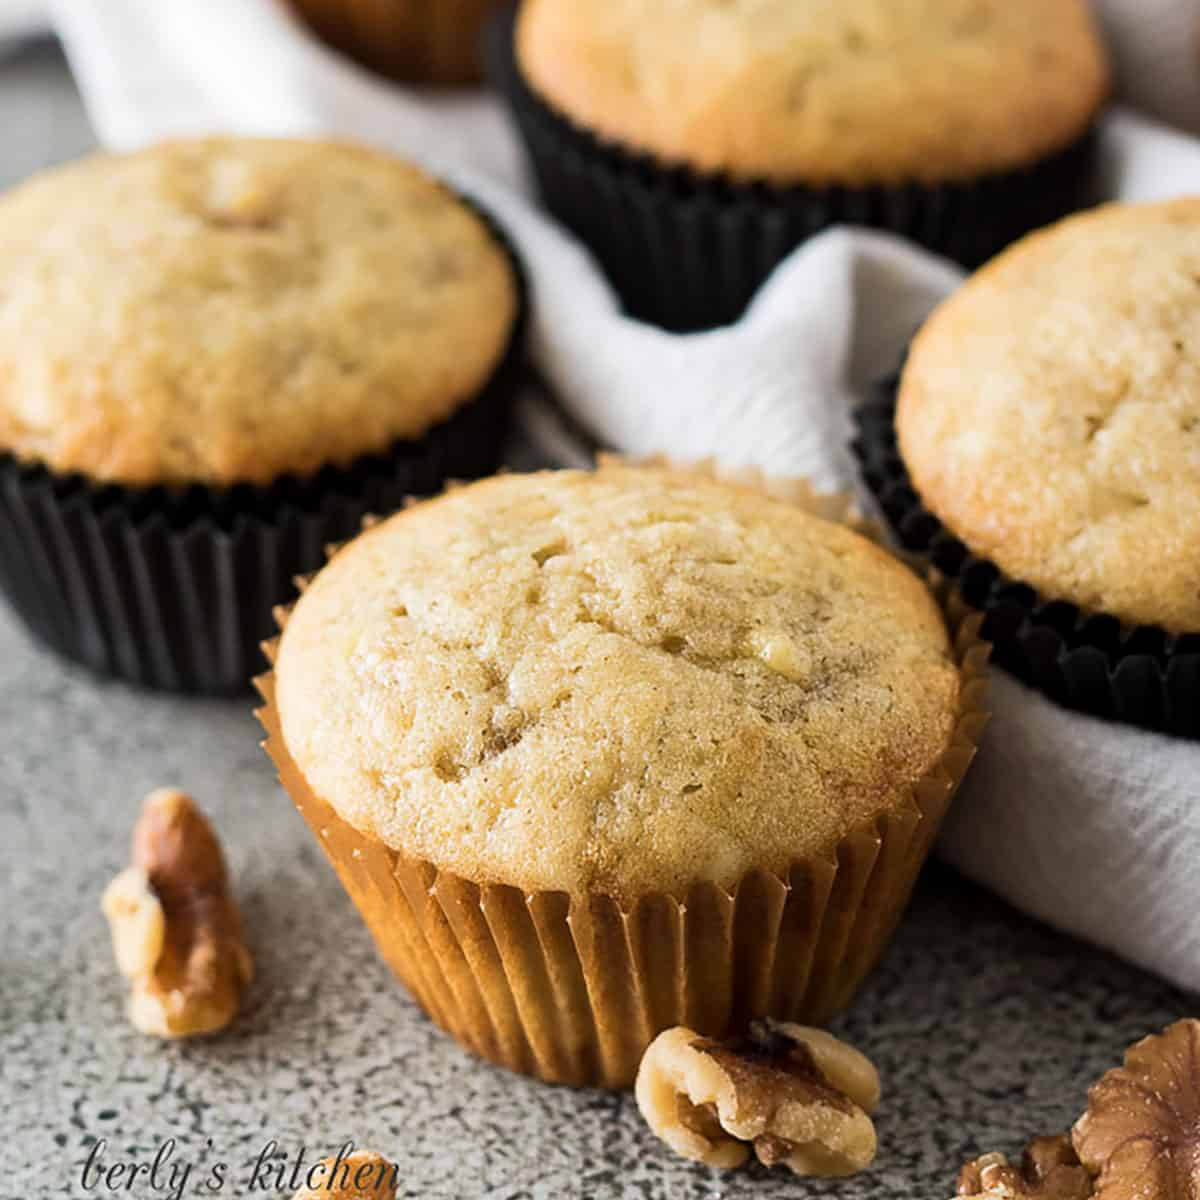 Banana nut muffins in brown and black muffin liners.